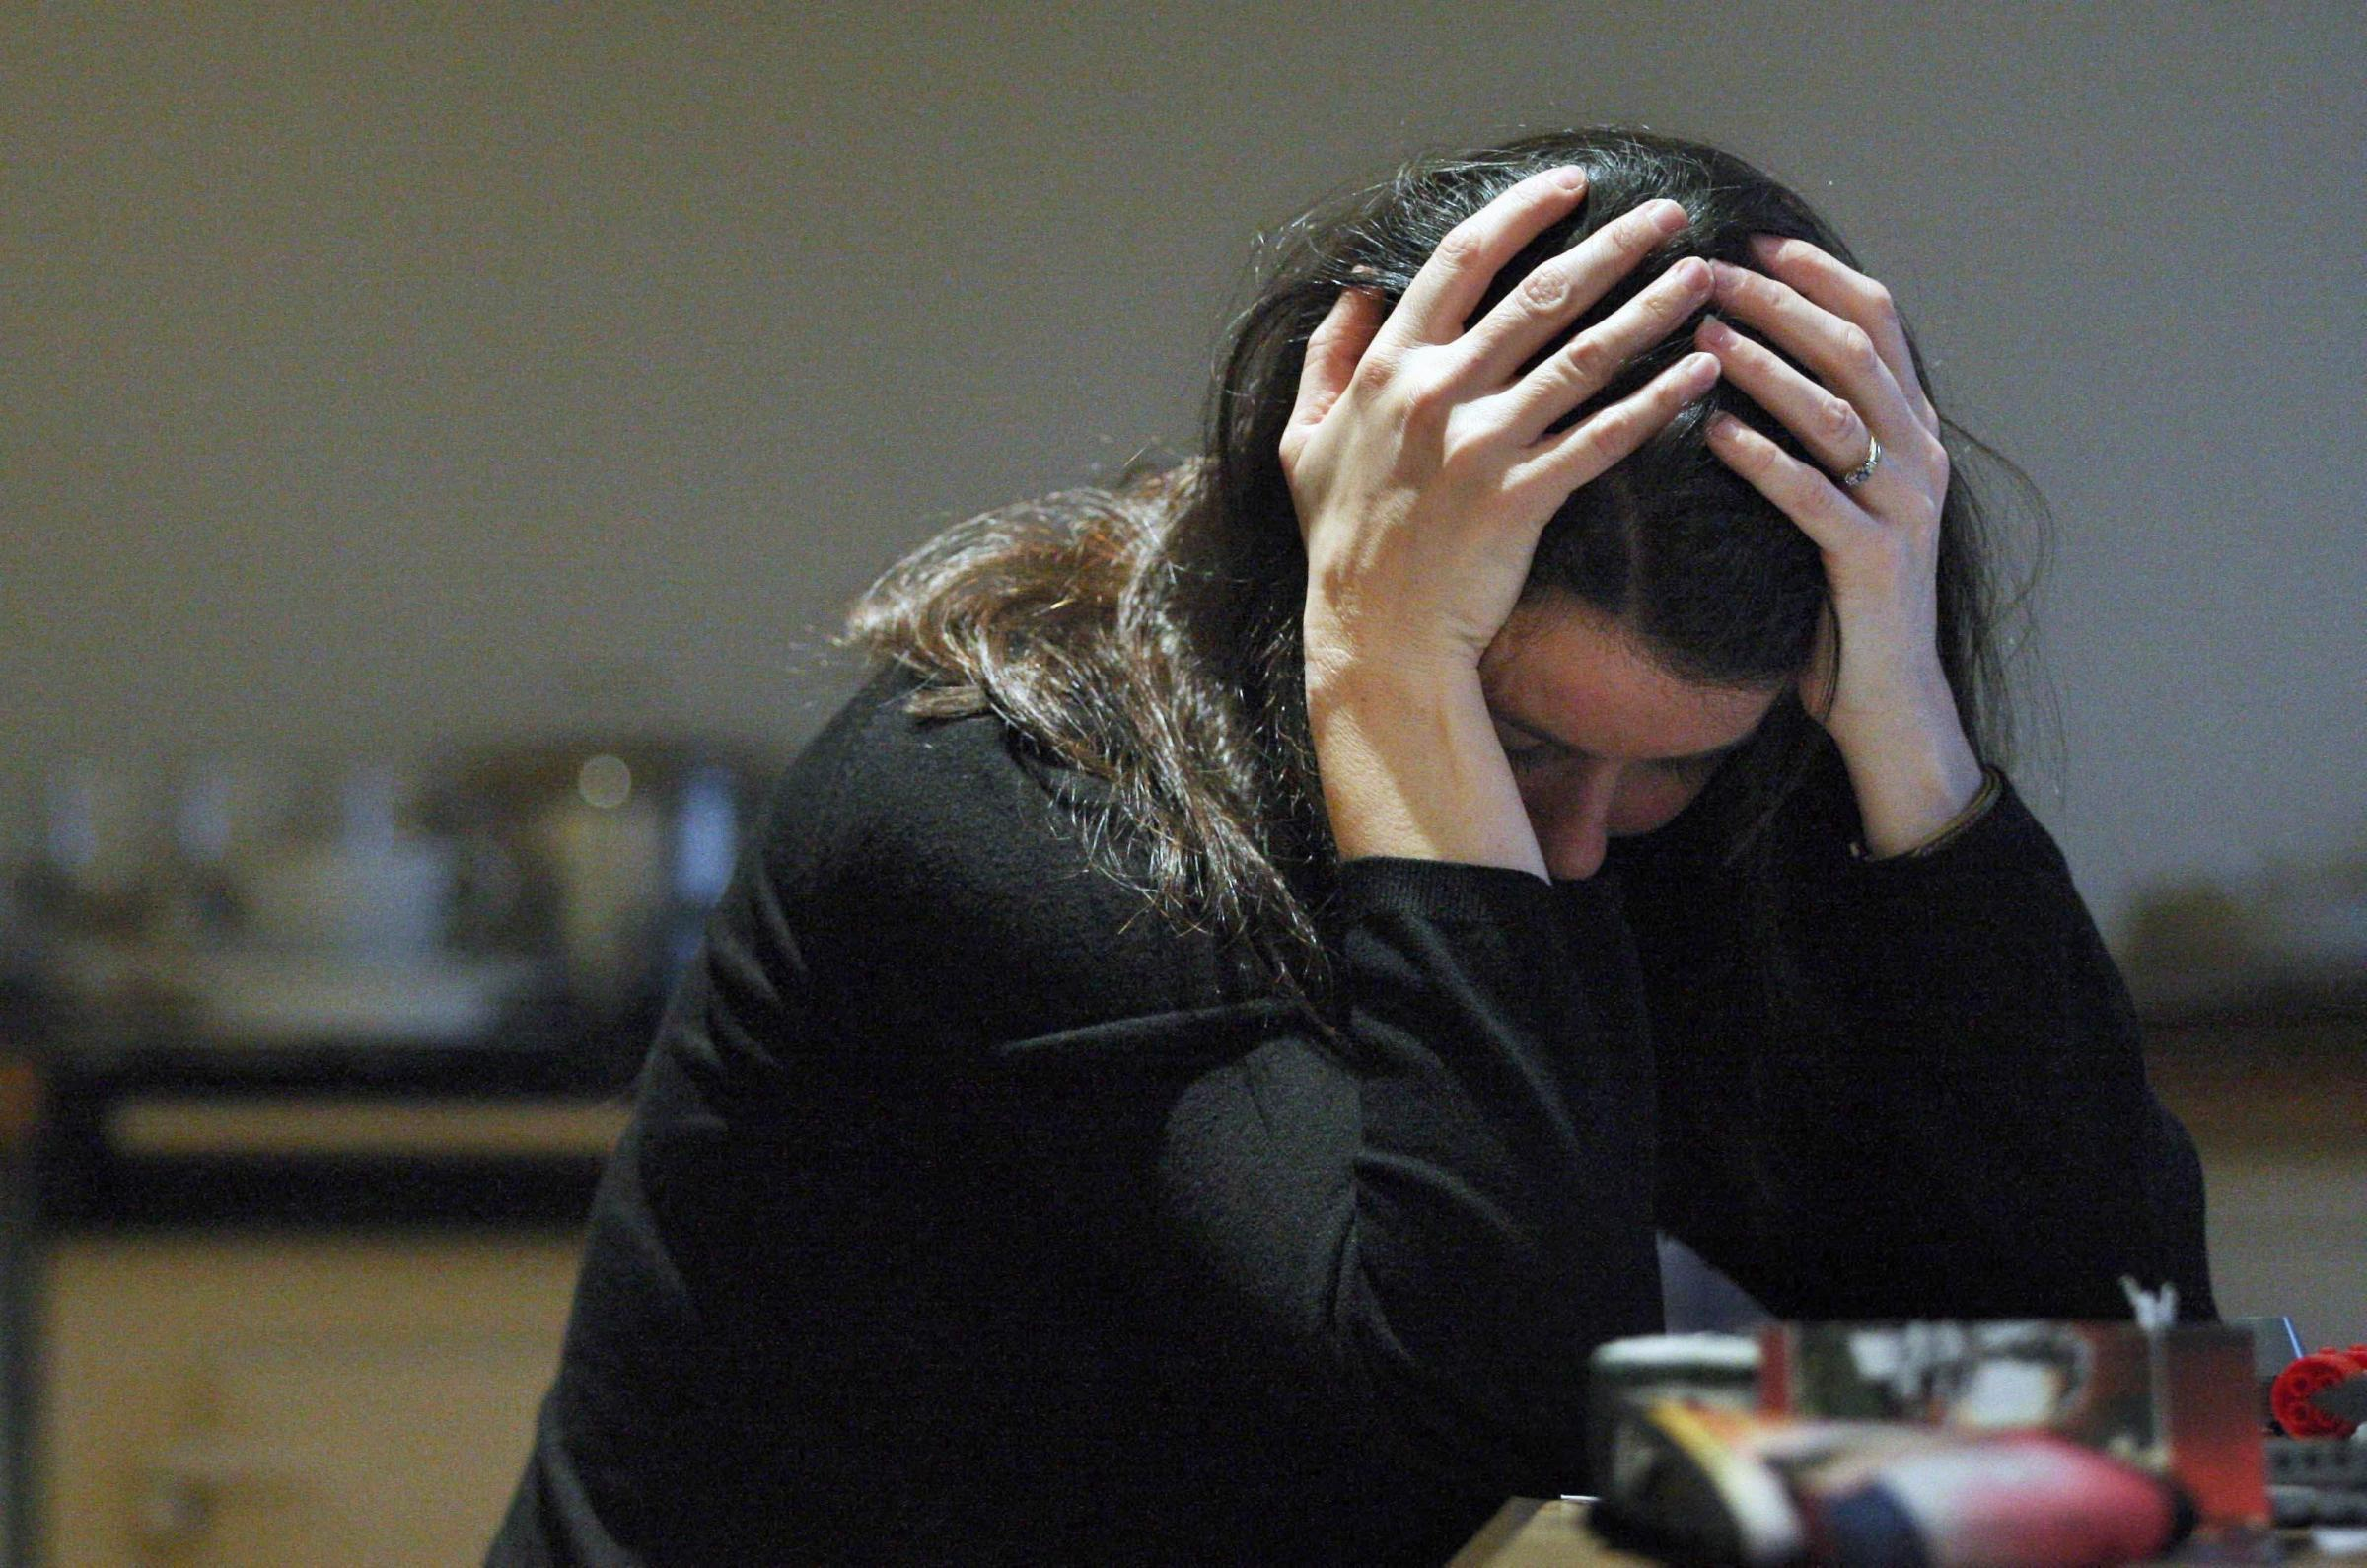 Social workers are under increasing stress, industry bodies say, leading to high staff turnover at local authorities